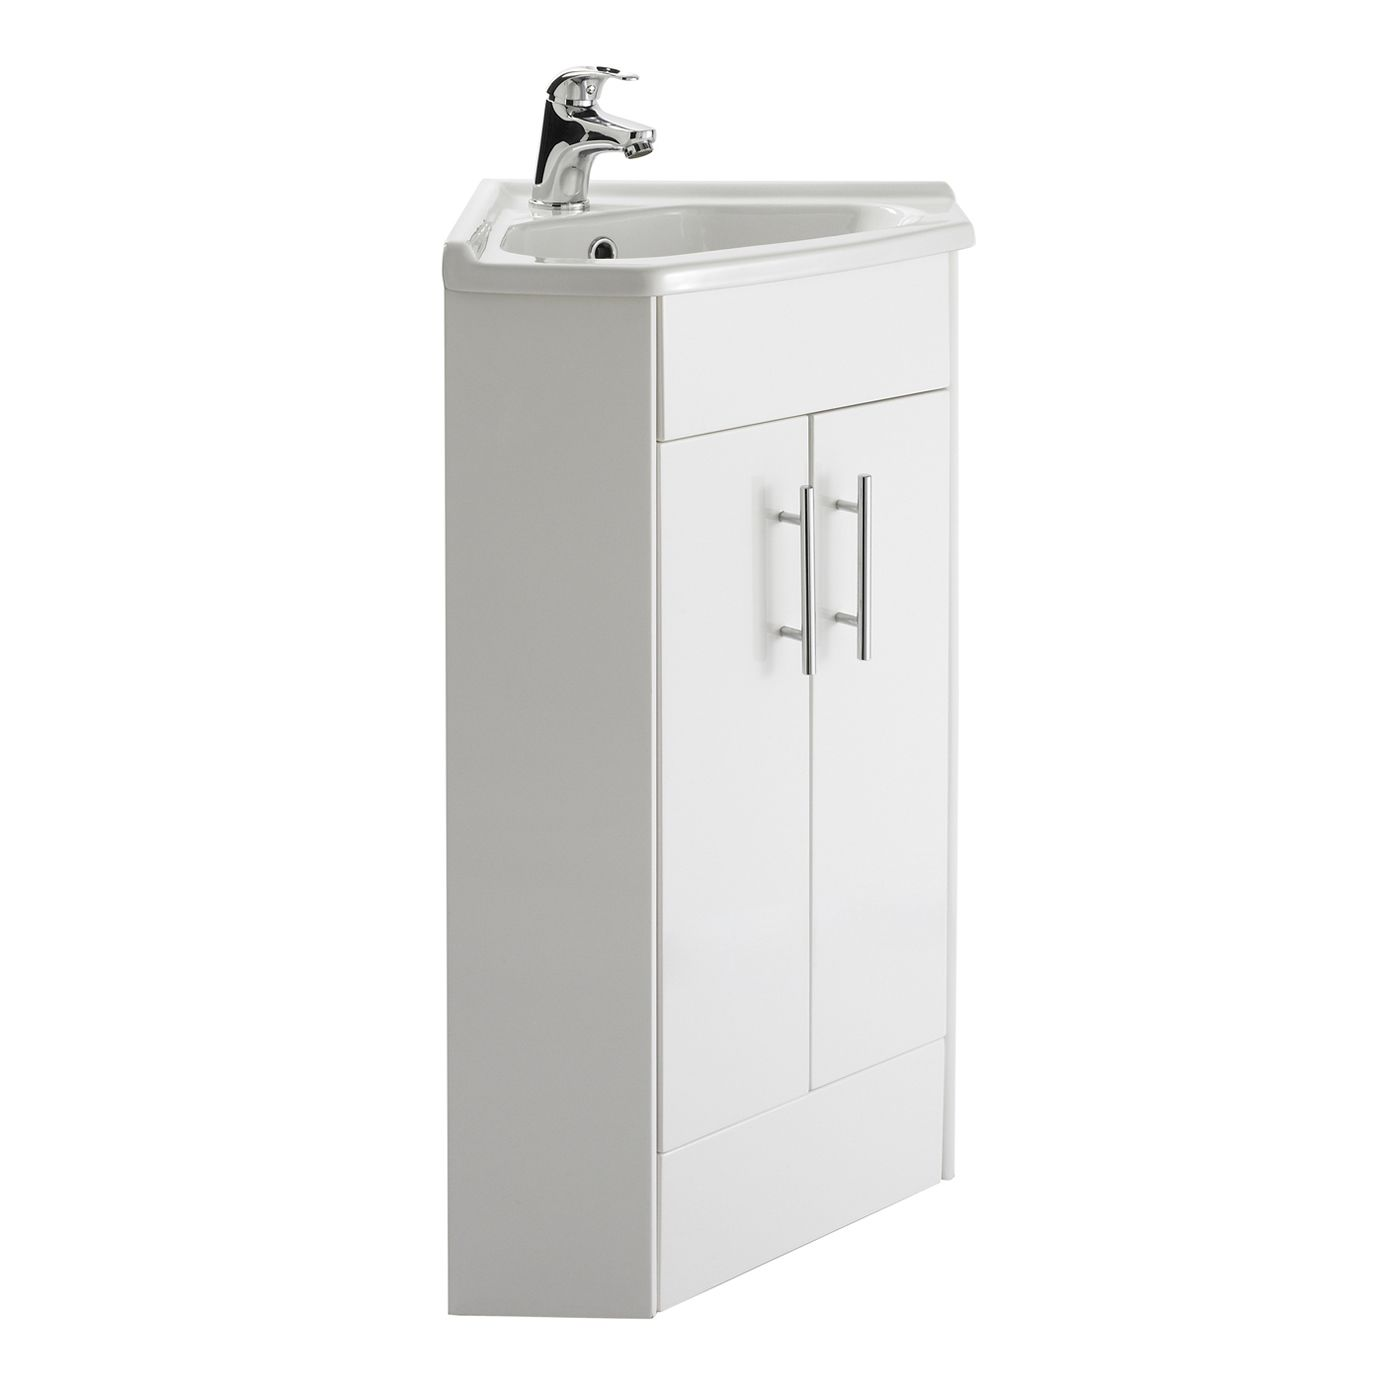 Meuble Lavabo D Angle Lave Mains Corner Vanity Bathroom - Meuble Sous Lave Main Angle